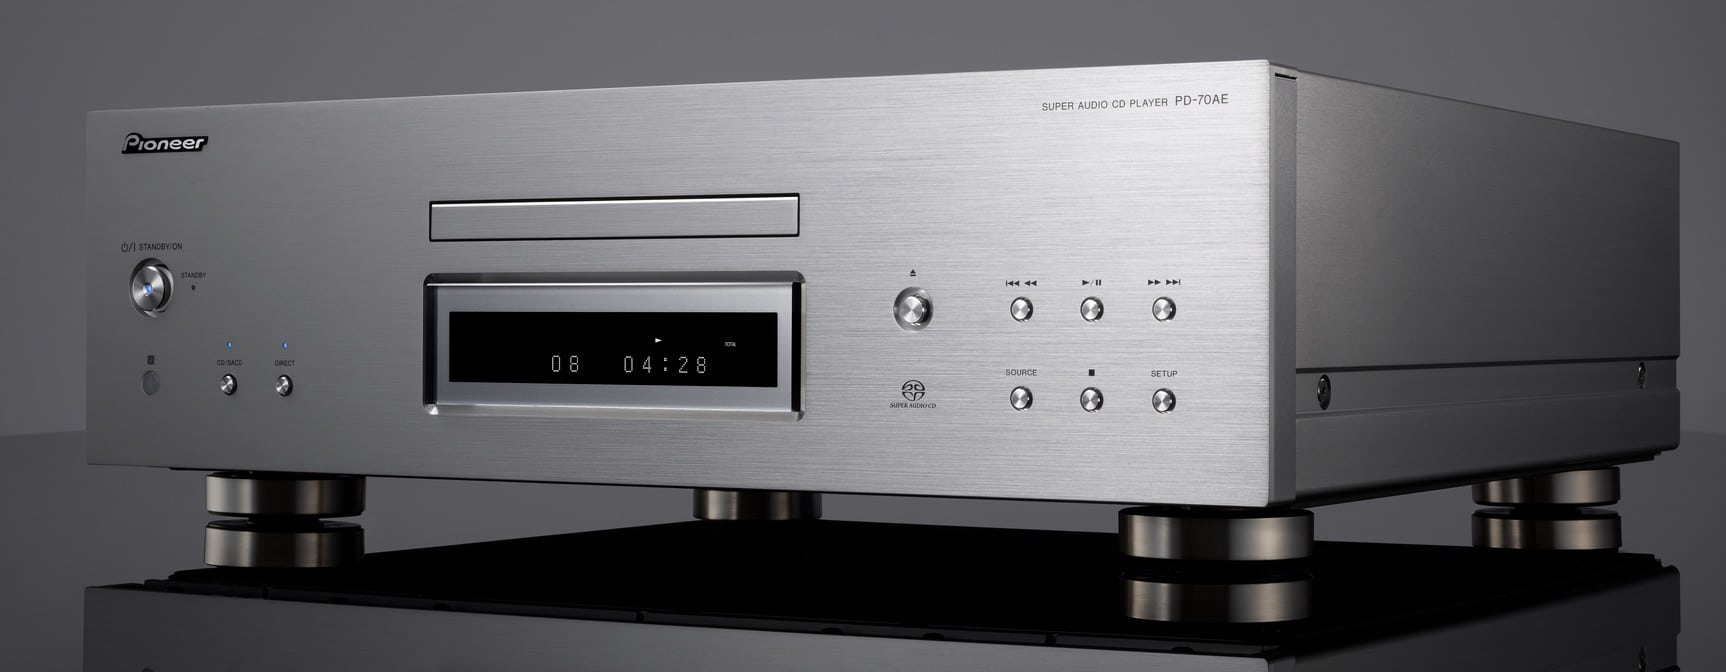 pioneer pd 70ae new flagship sacd player dac the. Black Bedroom Furniture Sets. Home Design Ideas